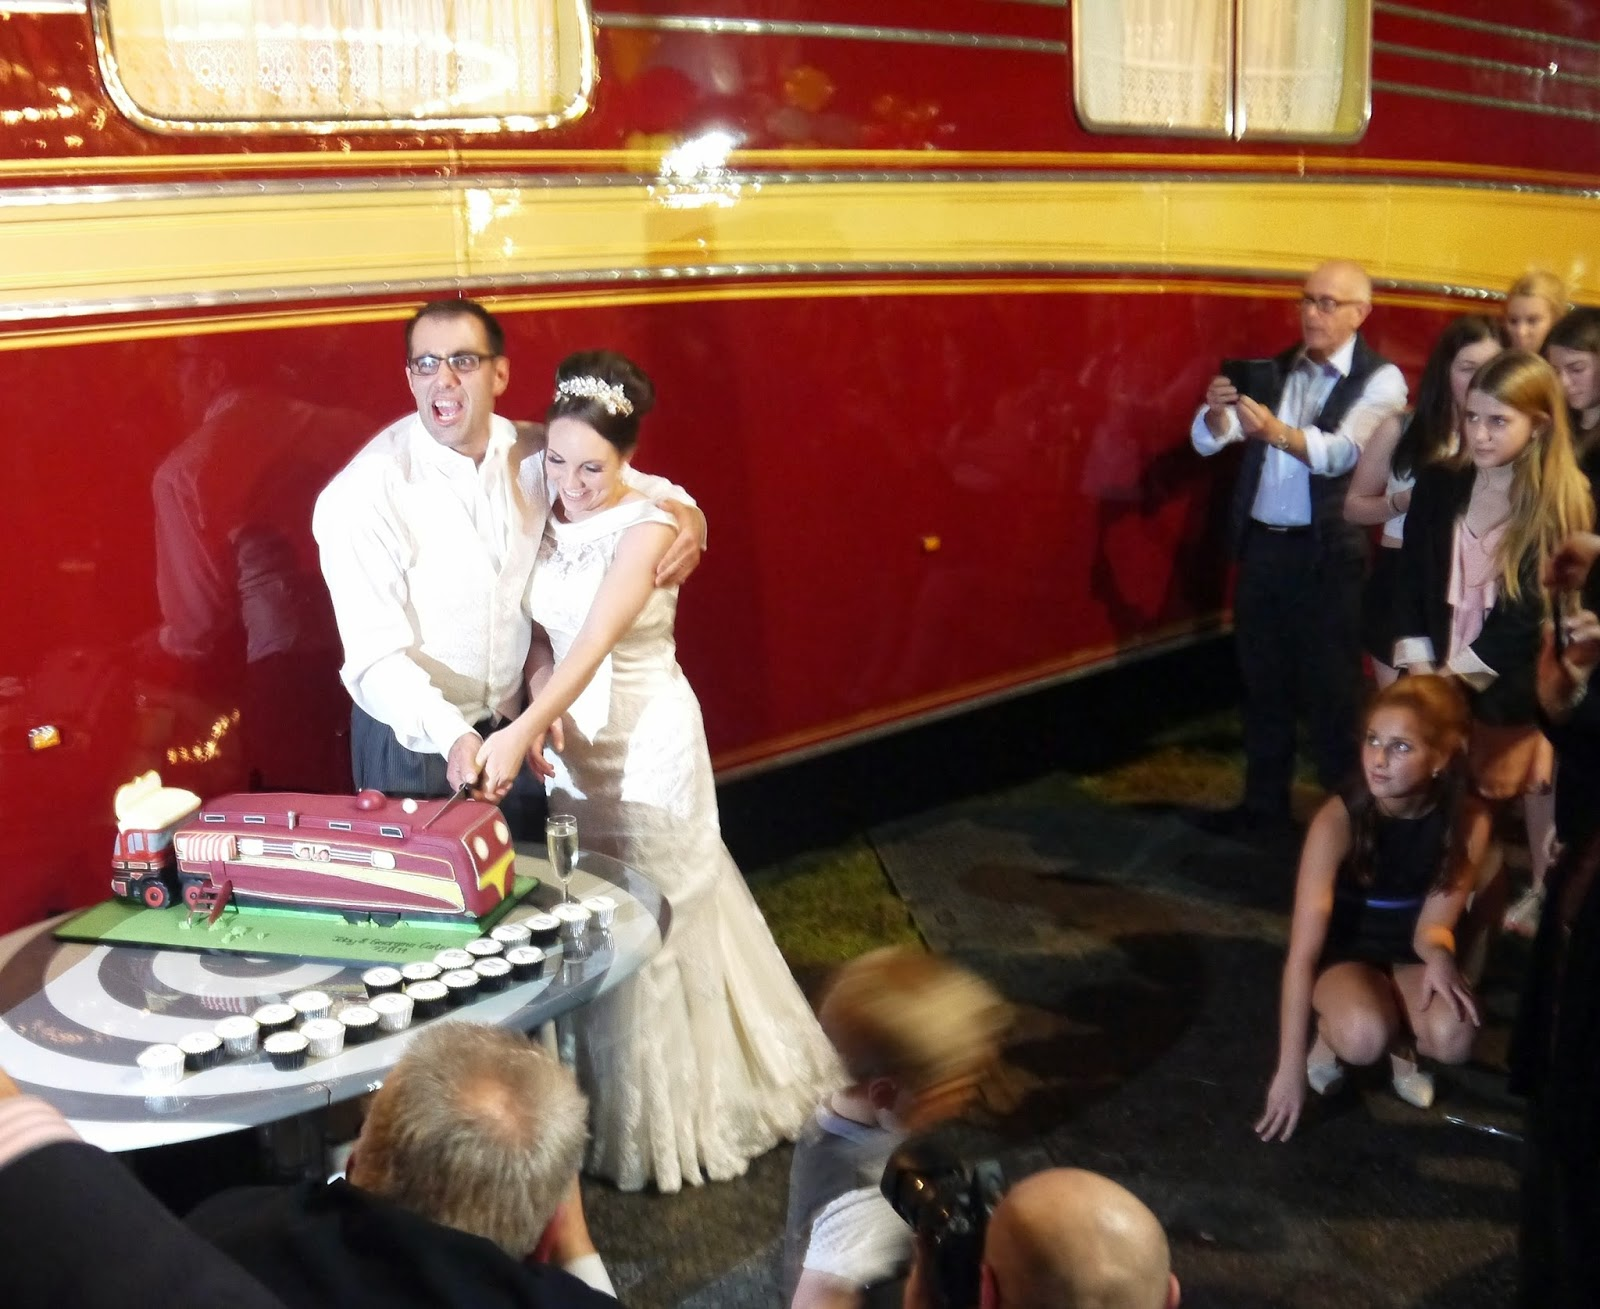 Carters Steam Fair Wedding - Cutting the wedding cake